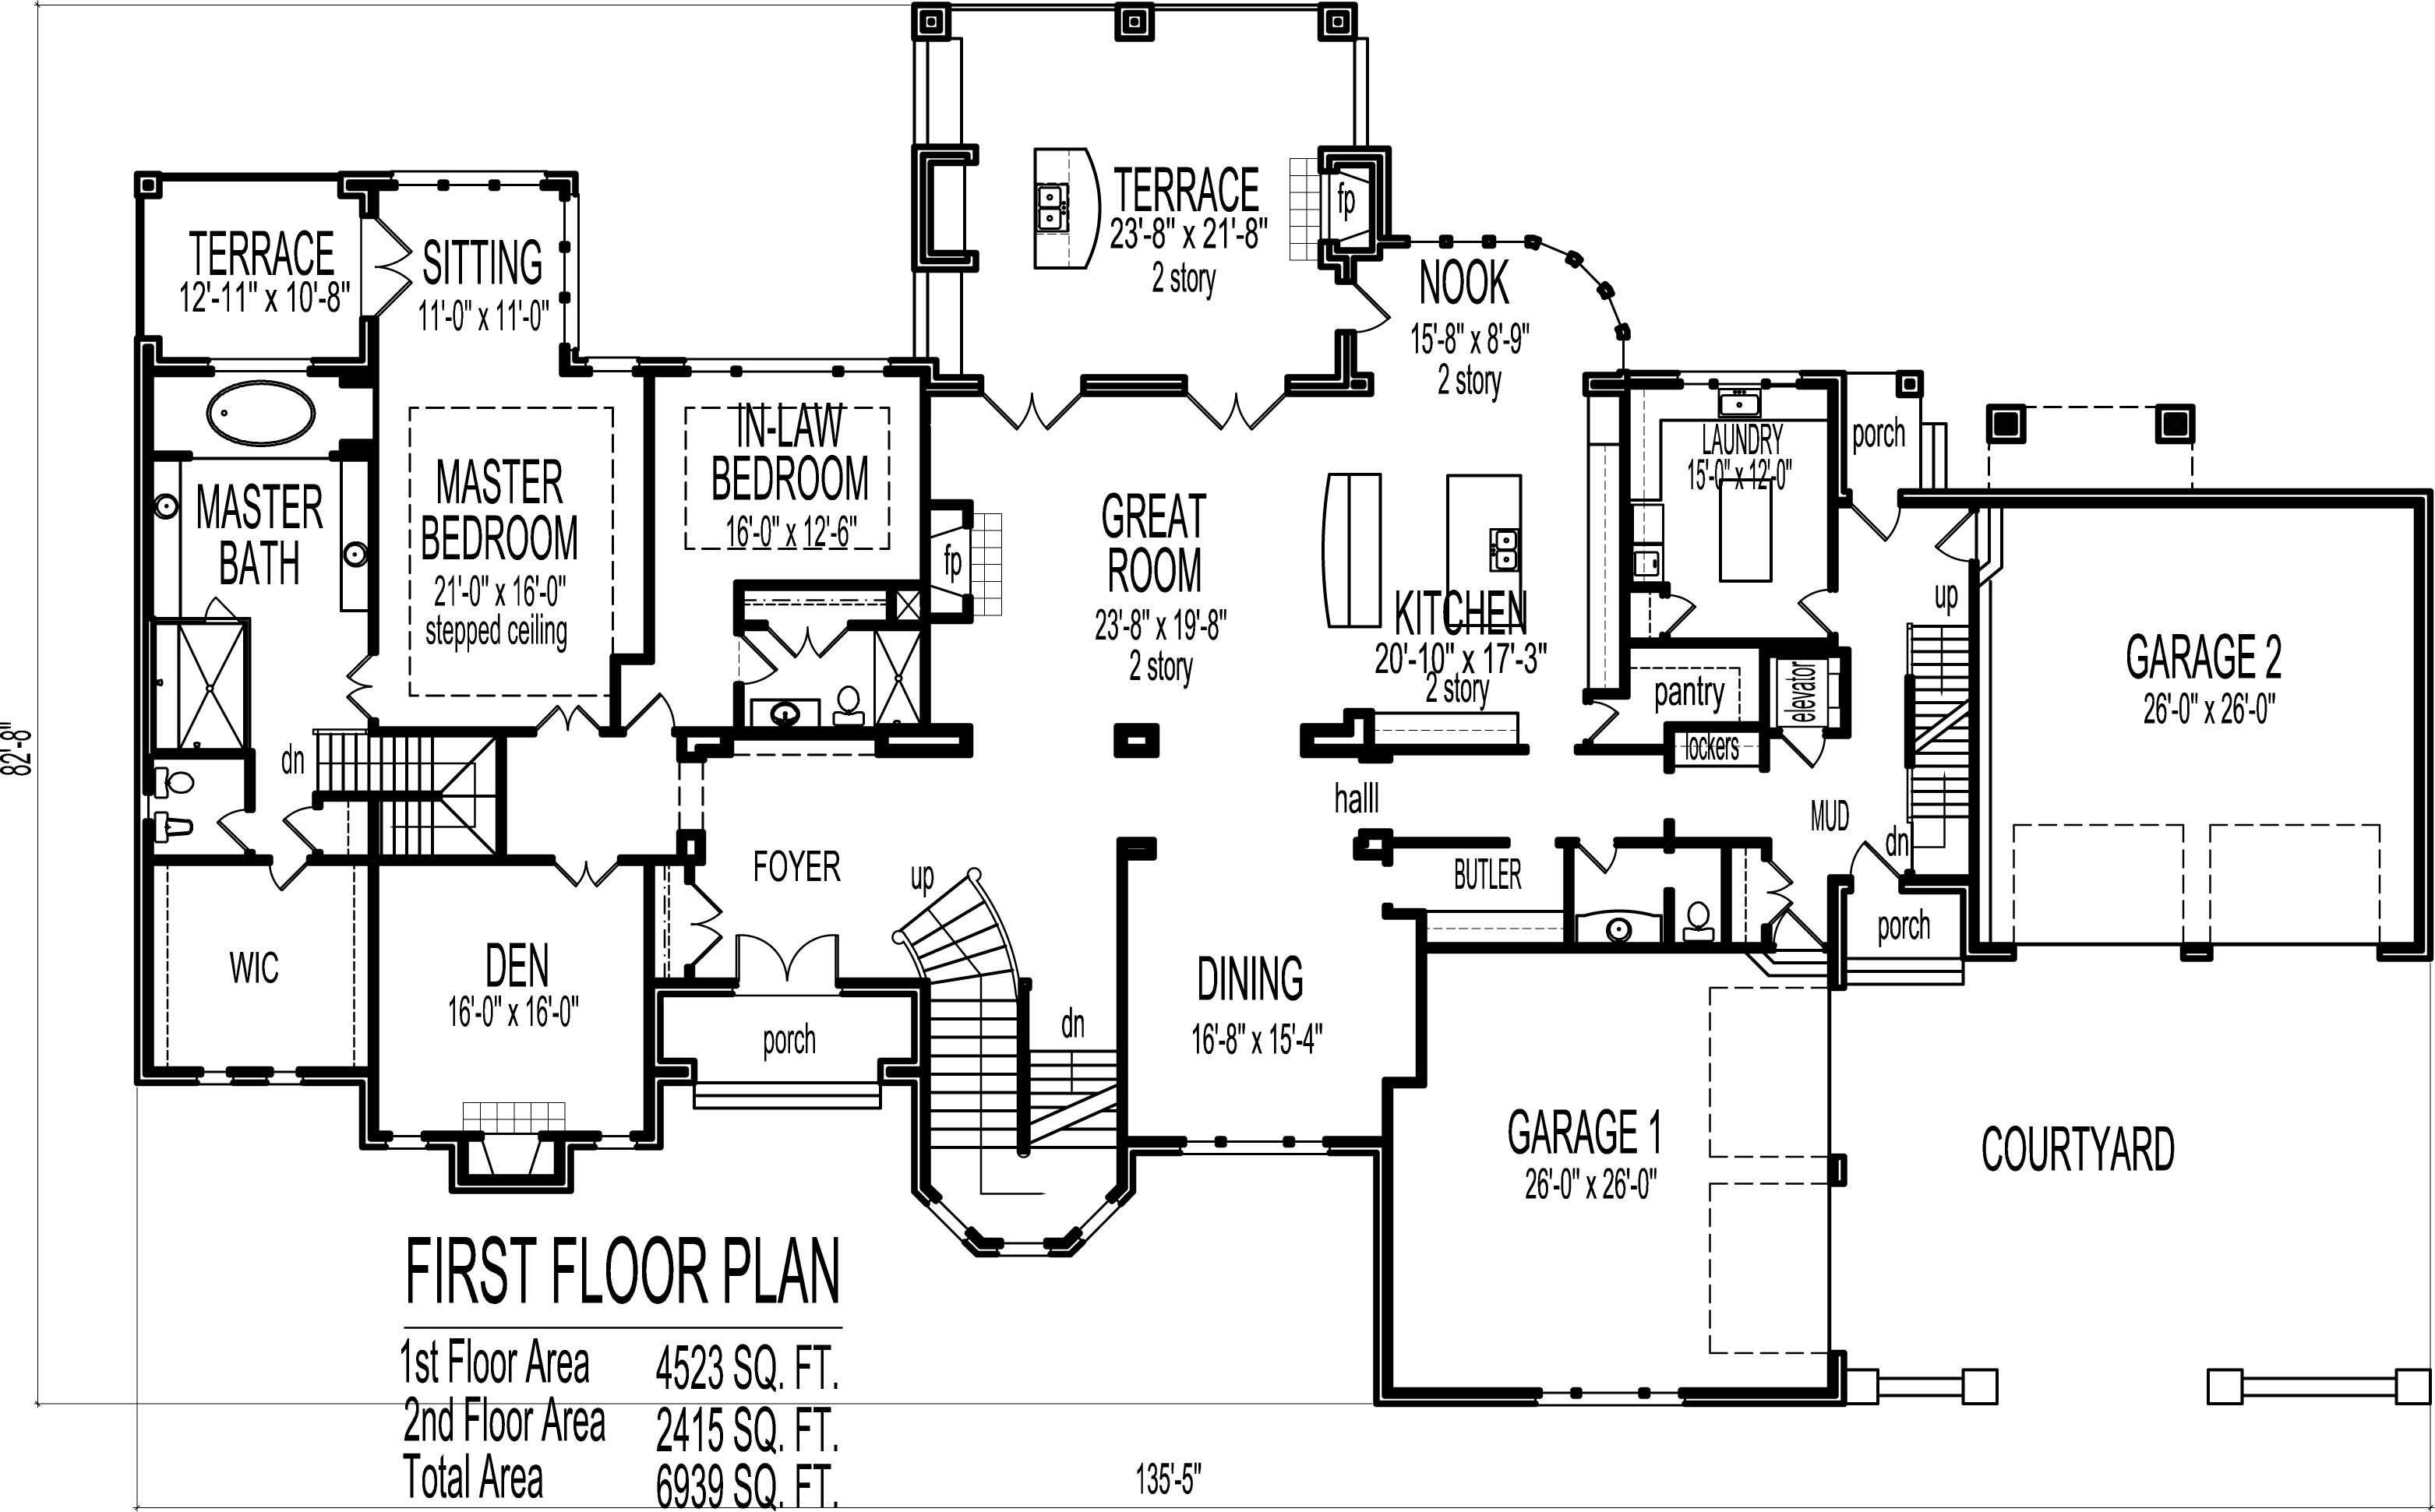 6 bedroom house plans blueprints 6 bedroom house plans 3d for 3d house blueprints